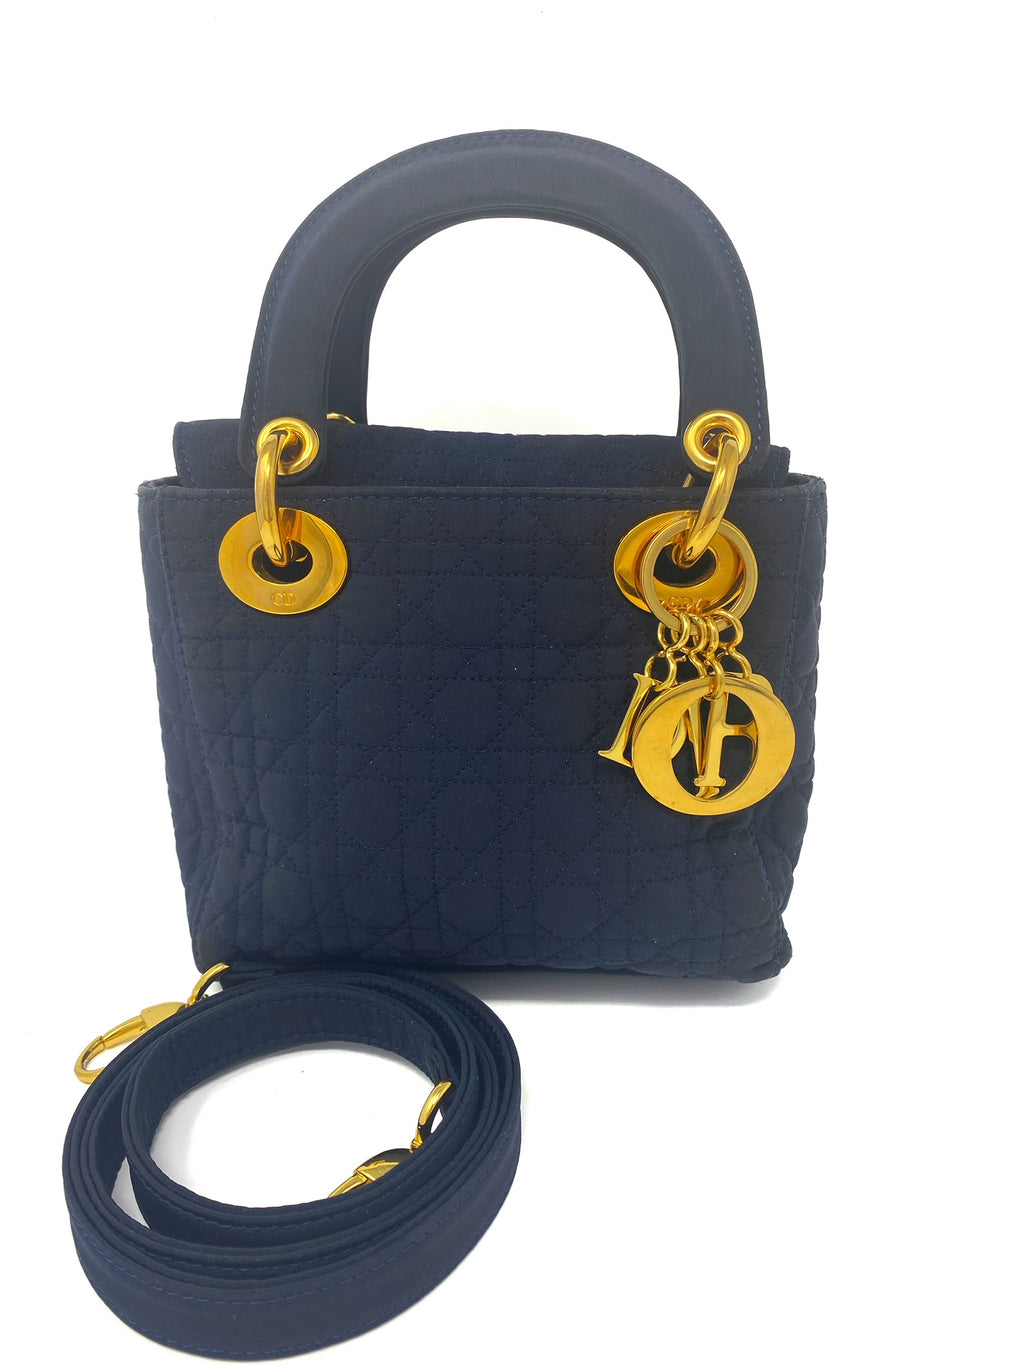 Lady dior mini bag, in navy blue with strap